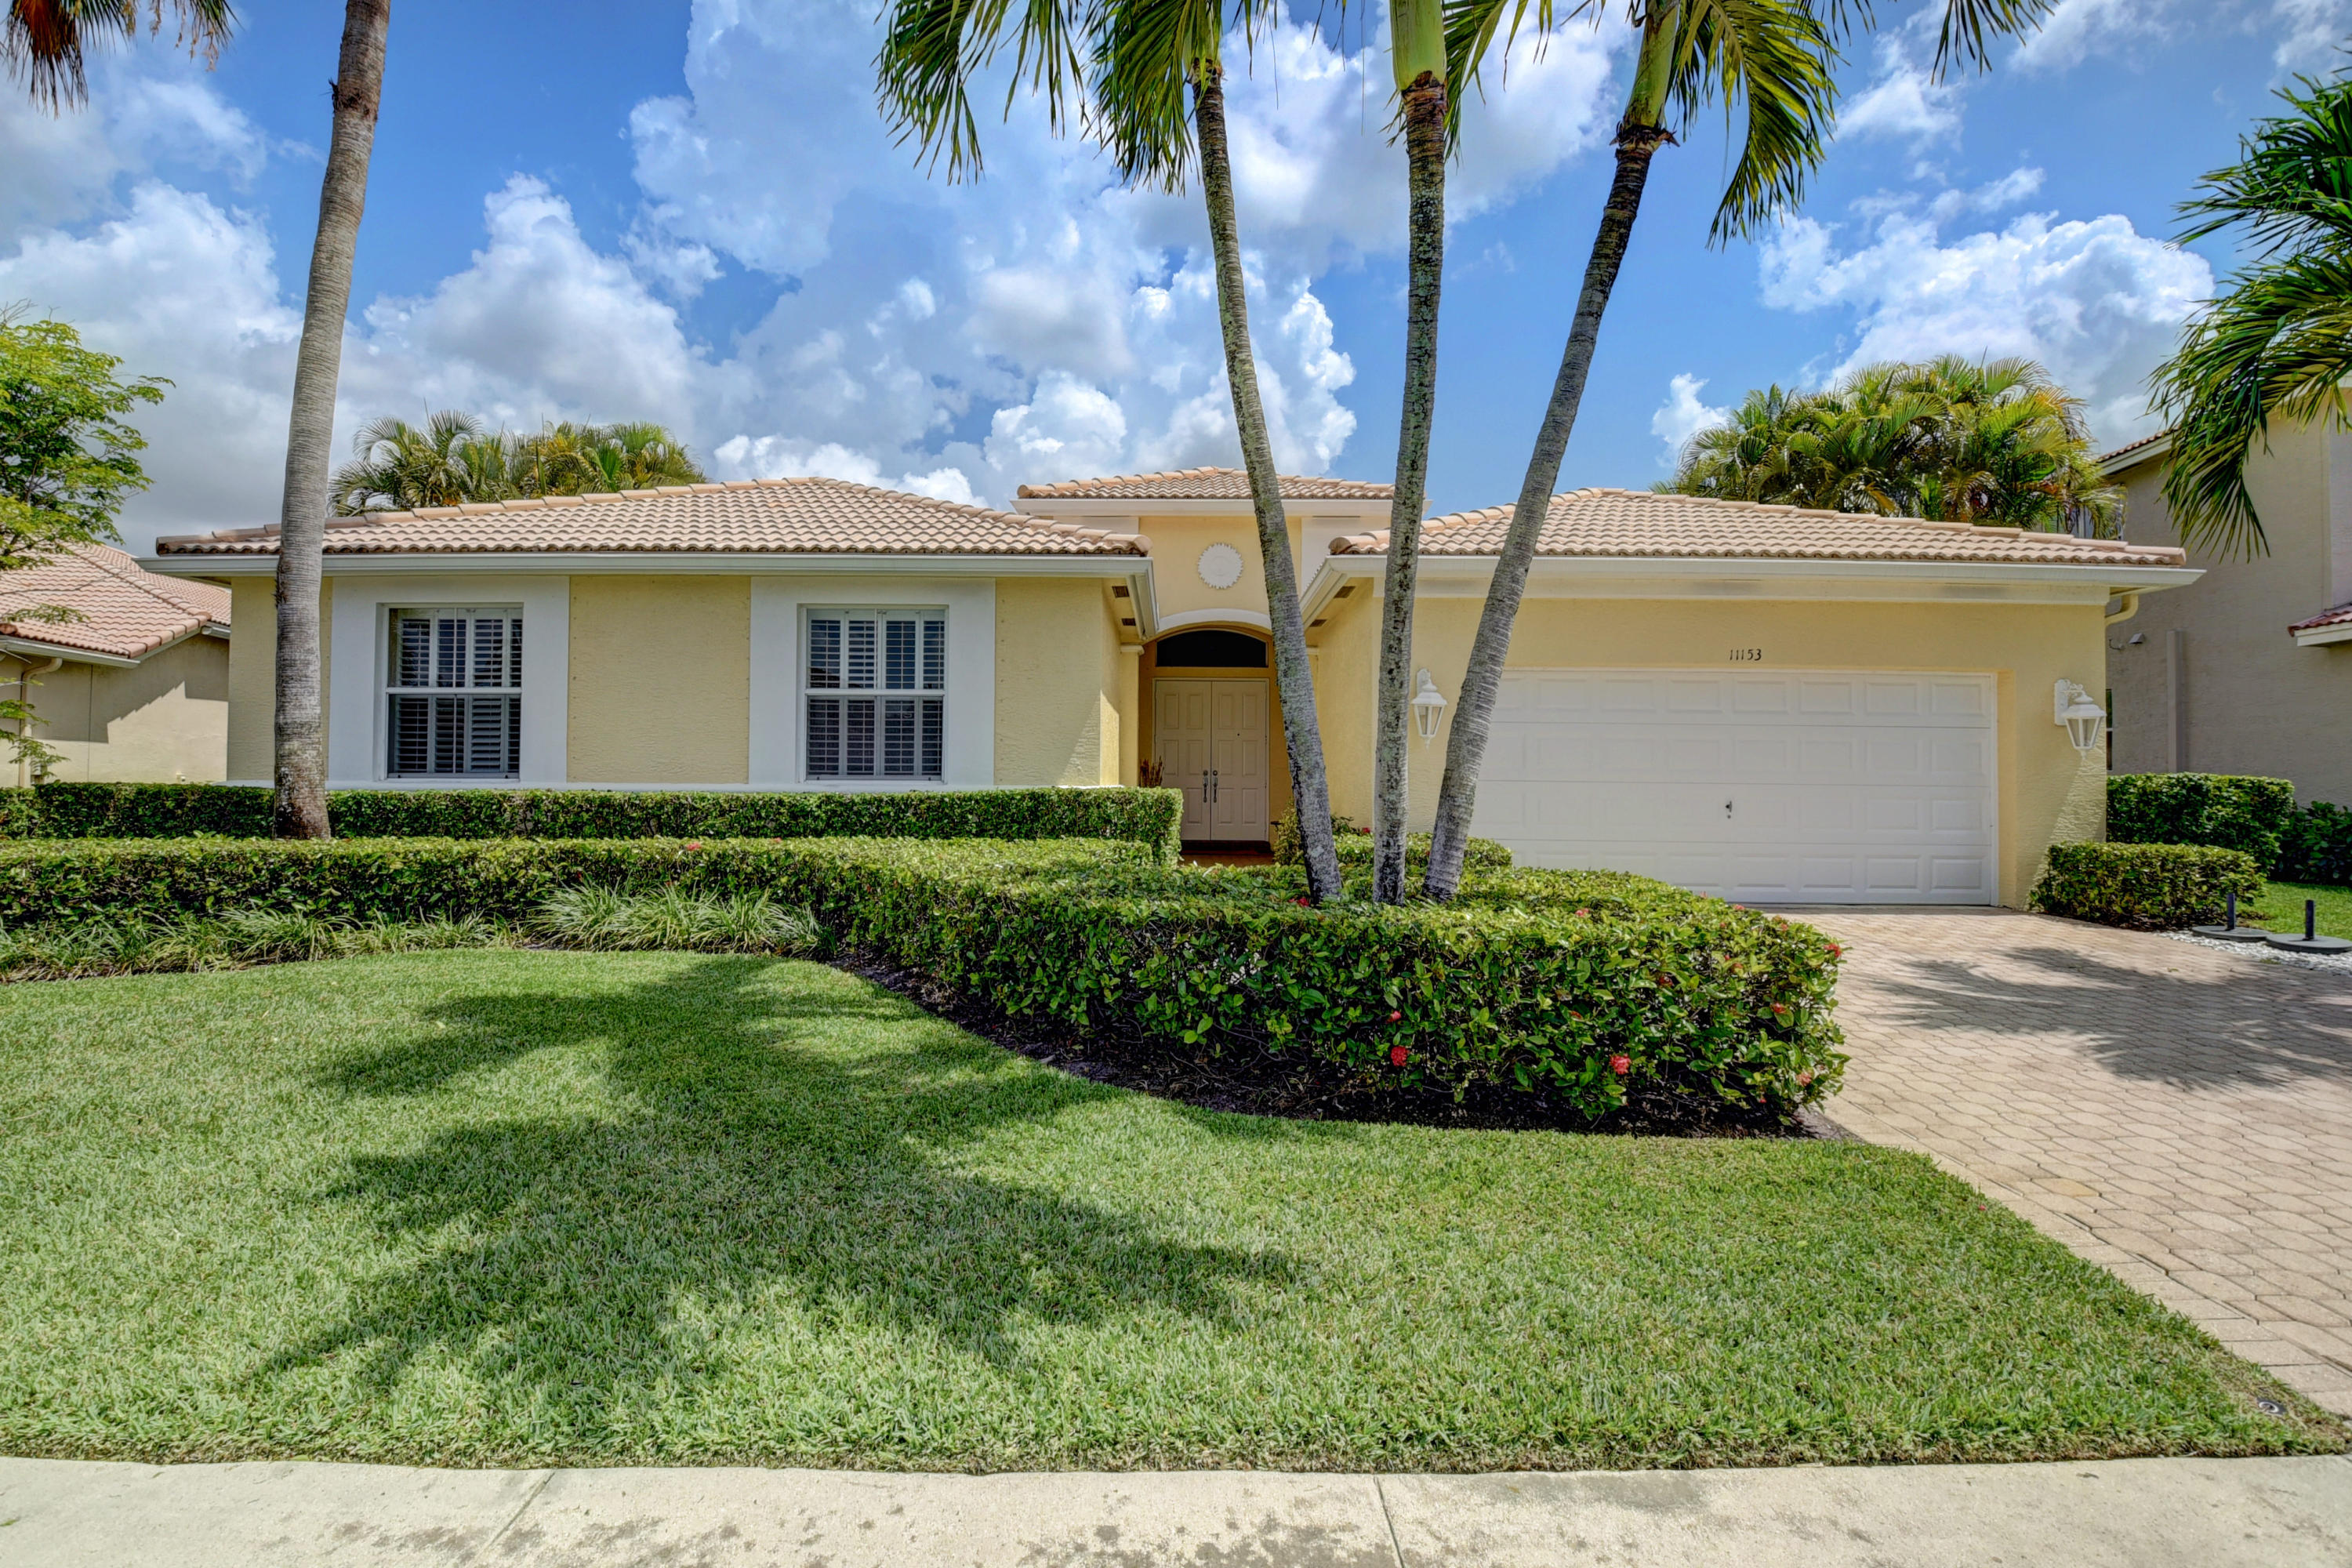 Photo of 11153 Sandyshell Way, Boca Raton, FL 33498